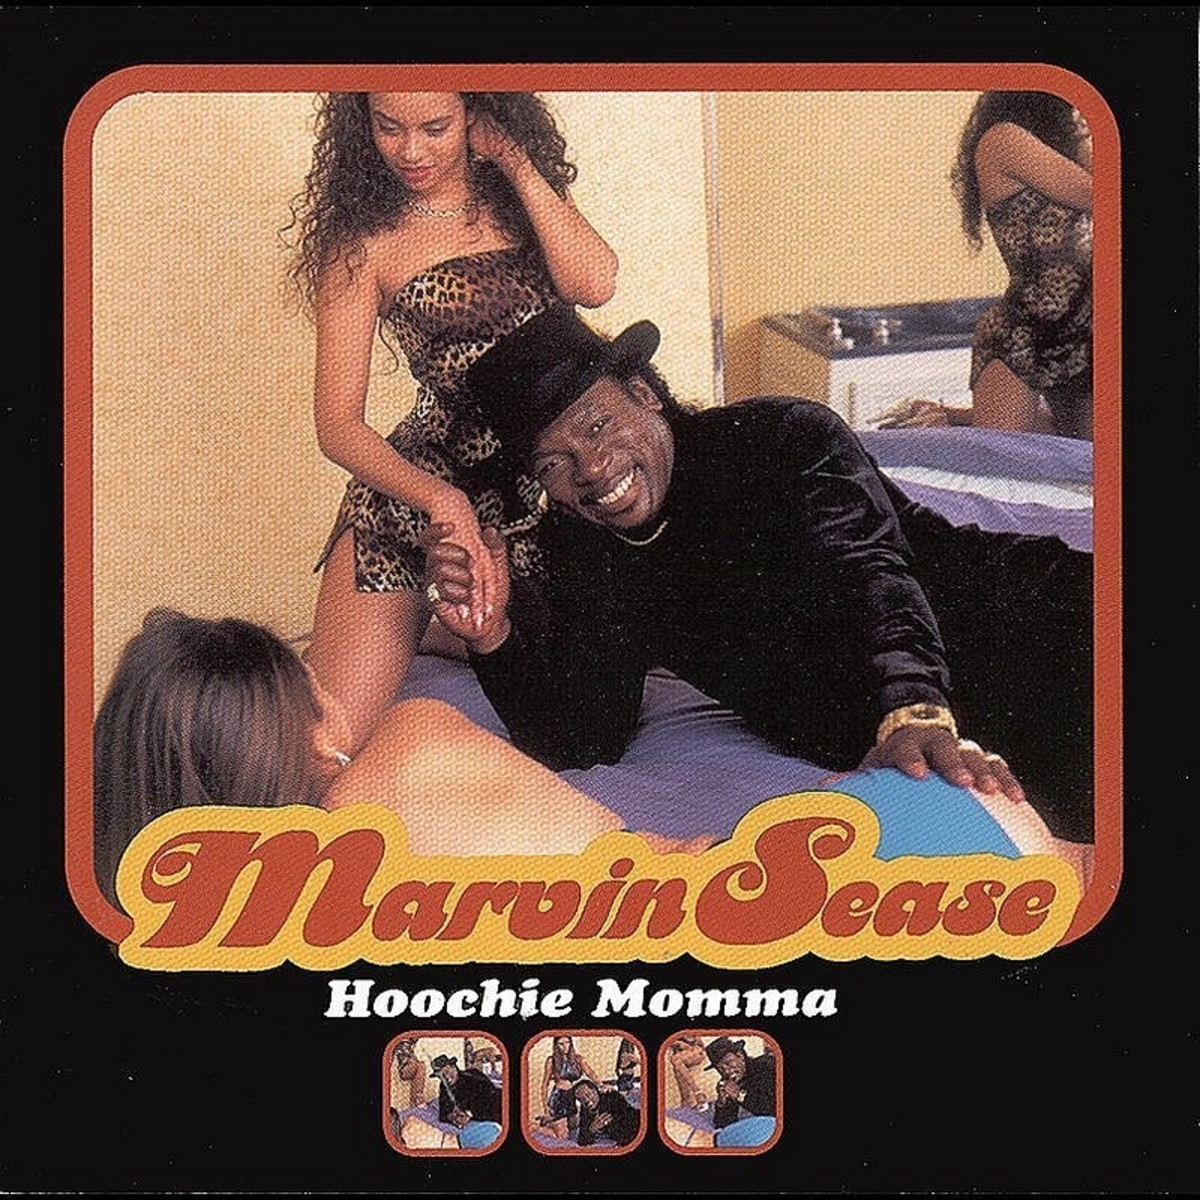 Hoochie Momma Mp3 Song Download Hoochie Momma Hoochie Momma Song By Marvin Sease On Gaana Com Hoochie mama can seal big day for crowe. gaana